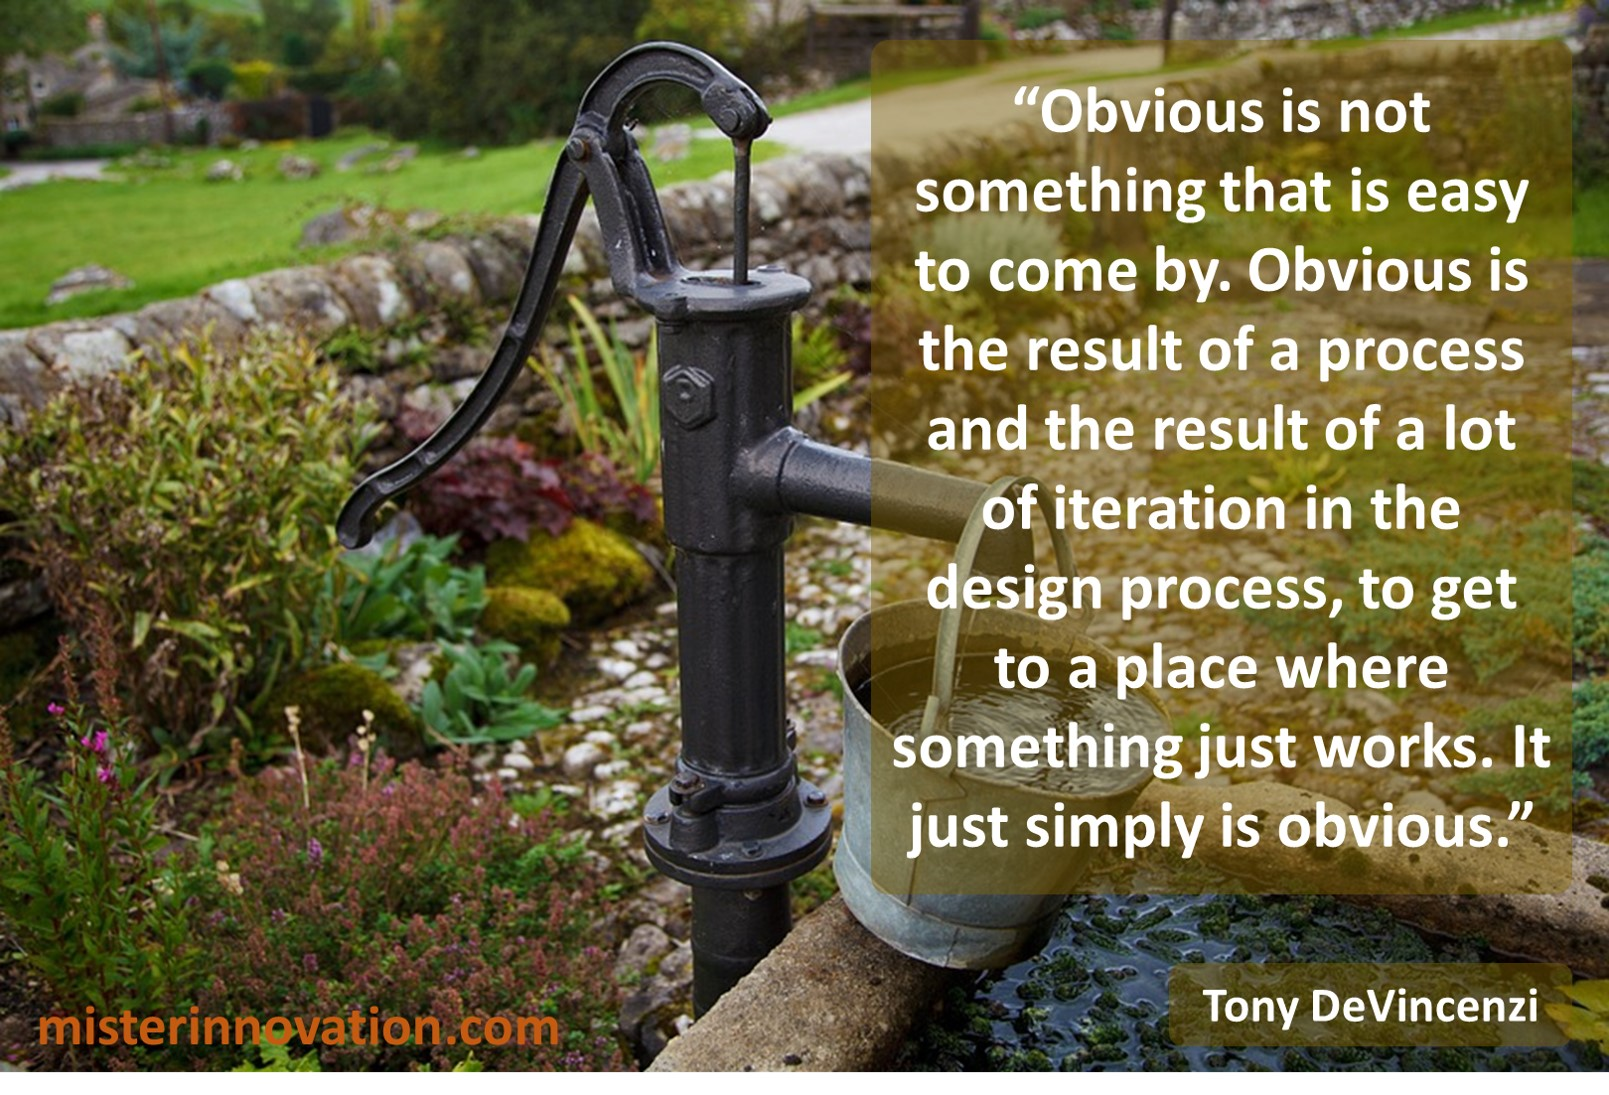 Tony DeVincenzi Quote on the Obvious and the Design Process